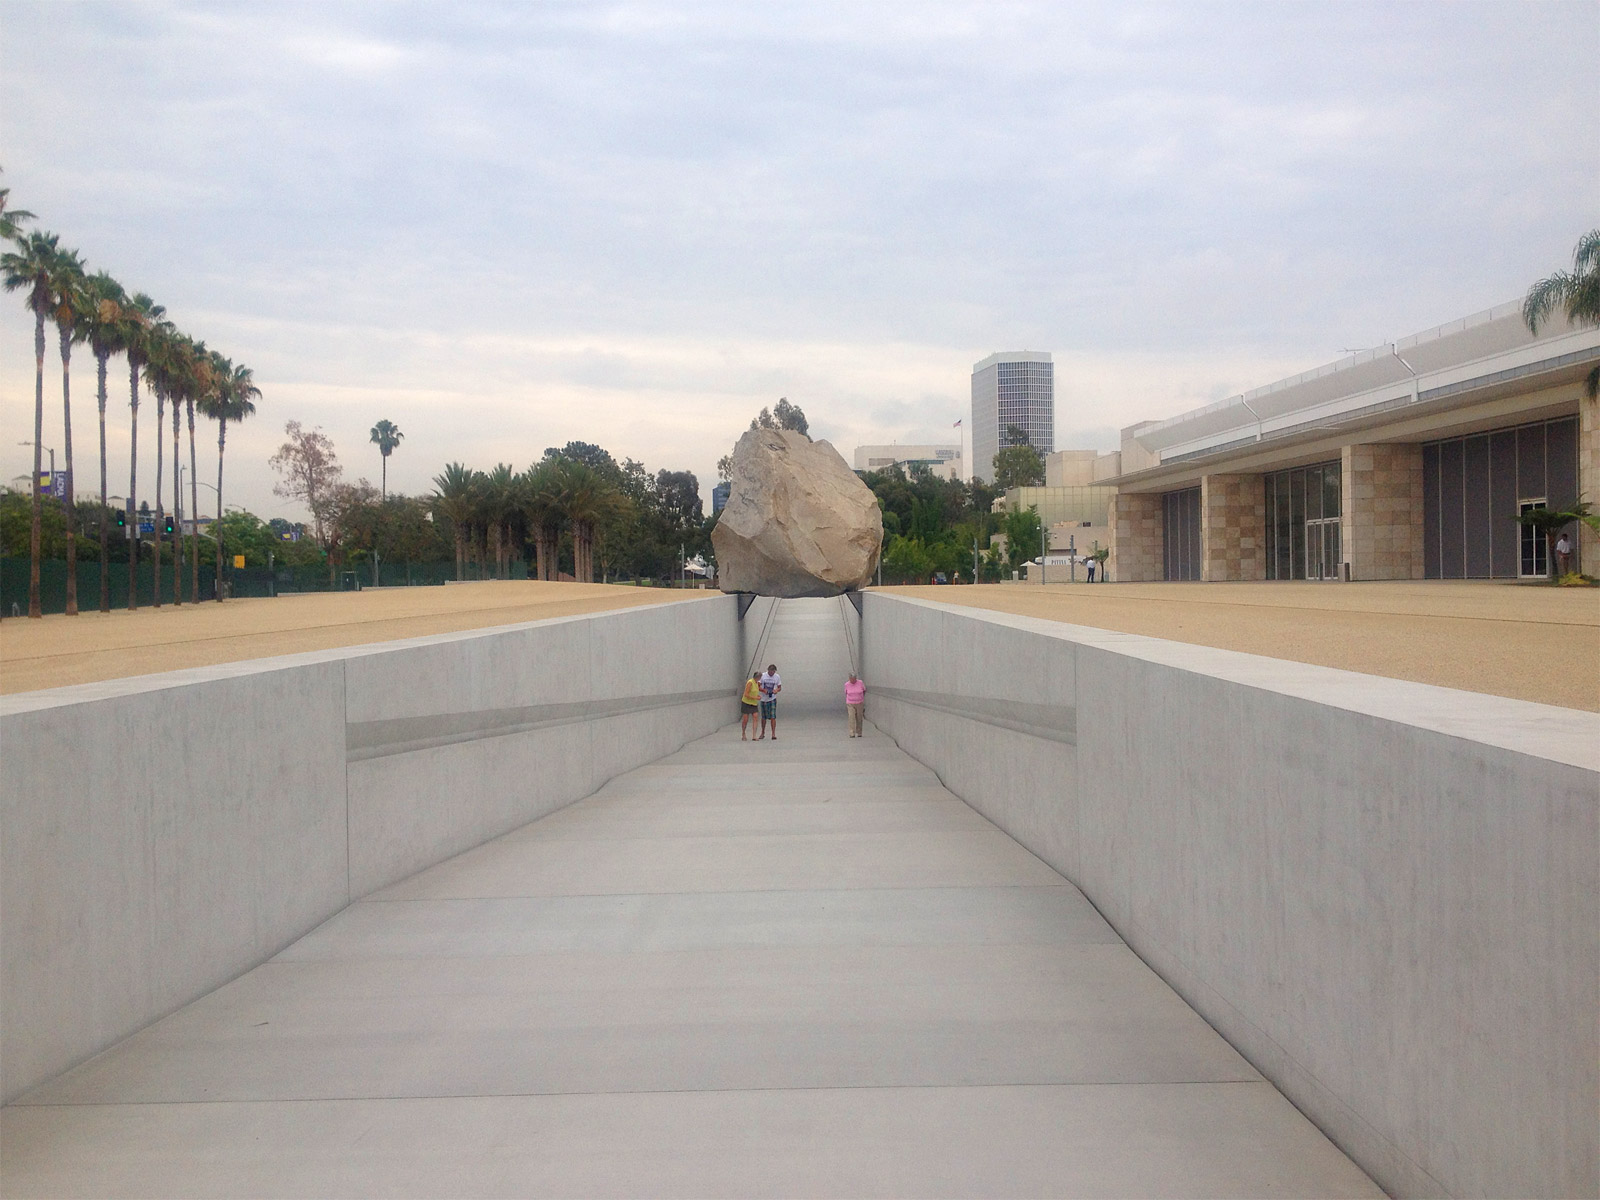 Levitated Mass, the summer it arrive in Los Angeles, 2013